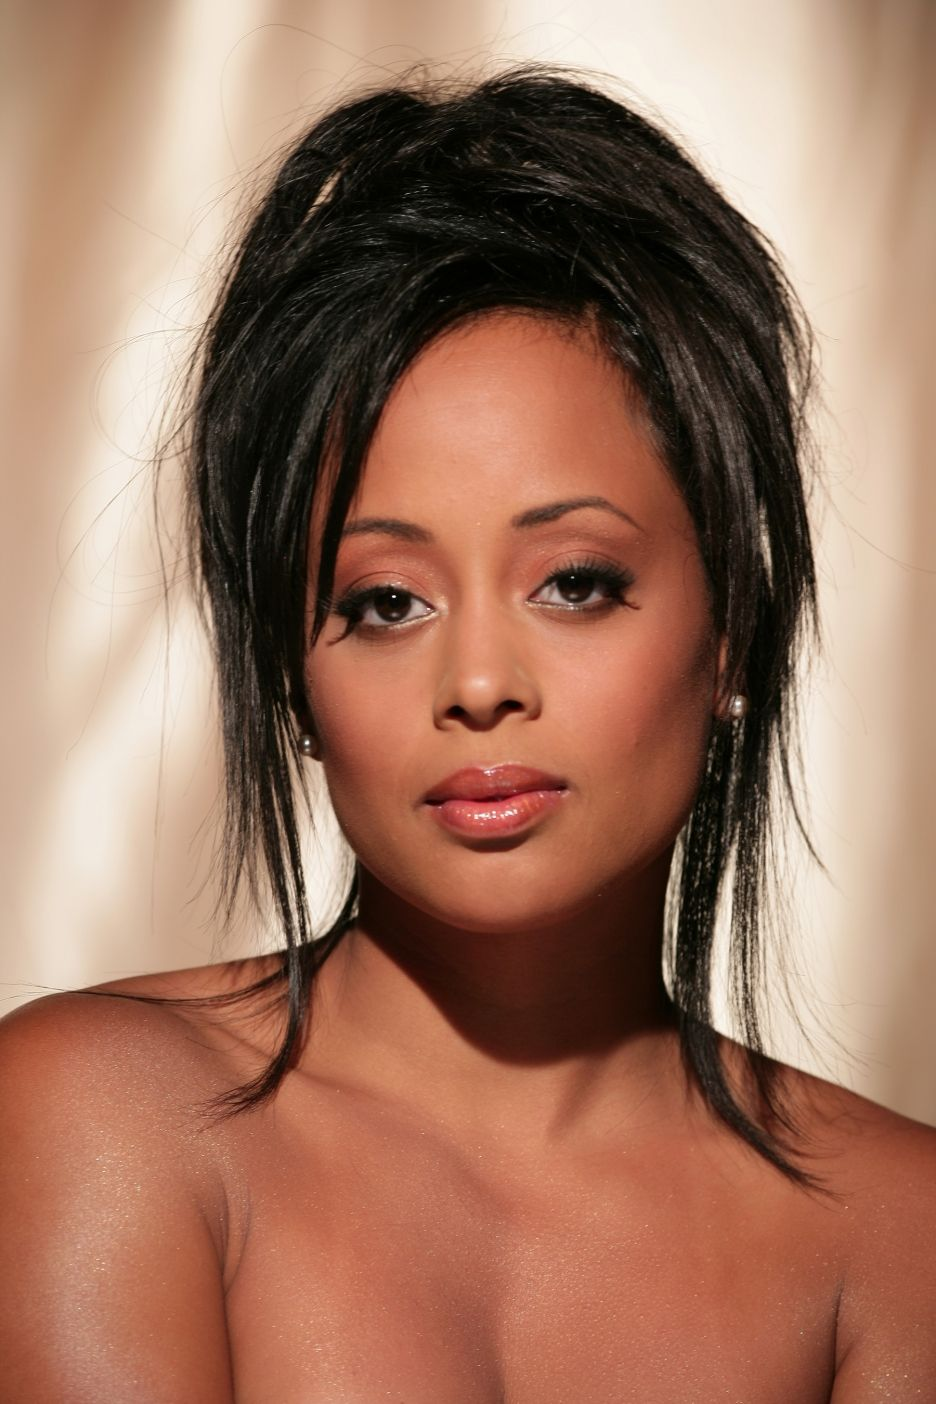 Essence Atkins Boobs intended for essence atkins | essence atkins | pinterest | atkins